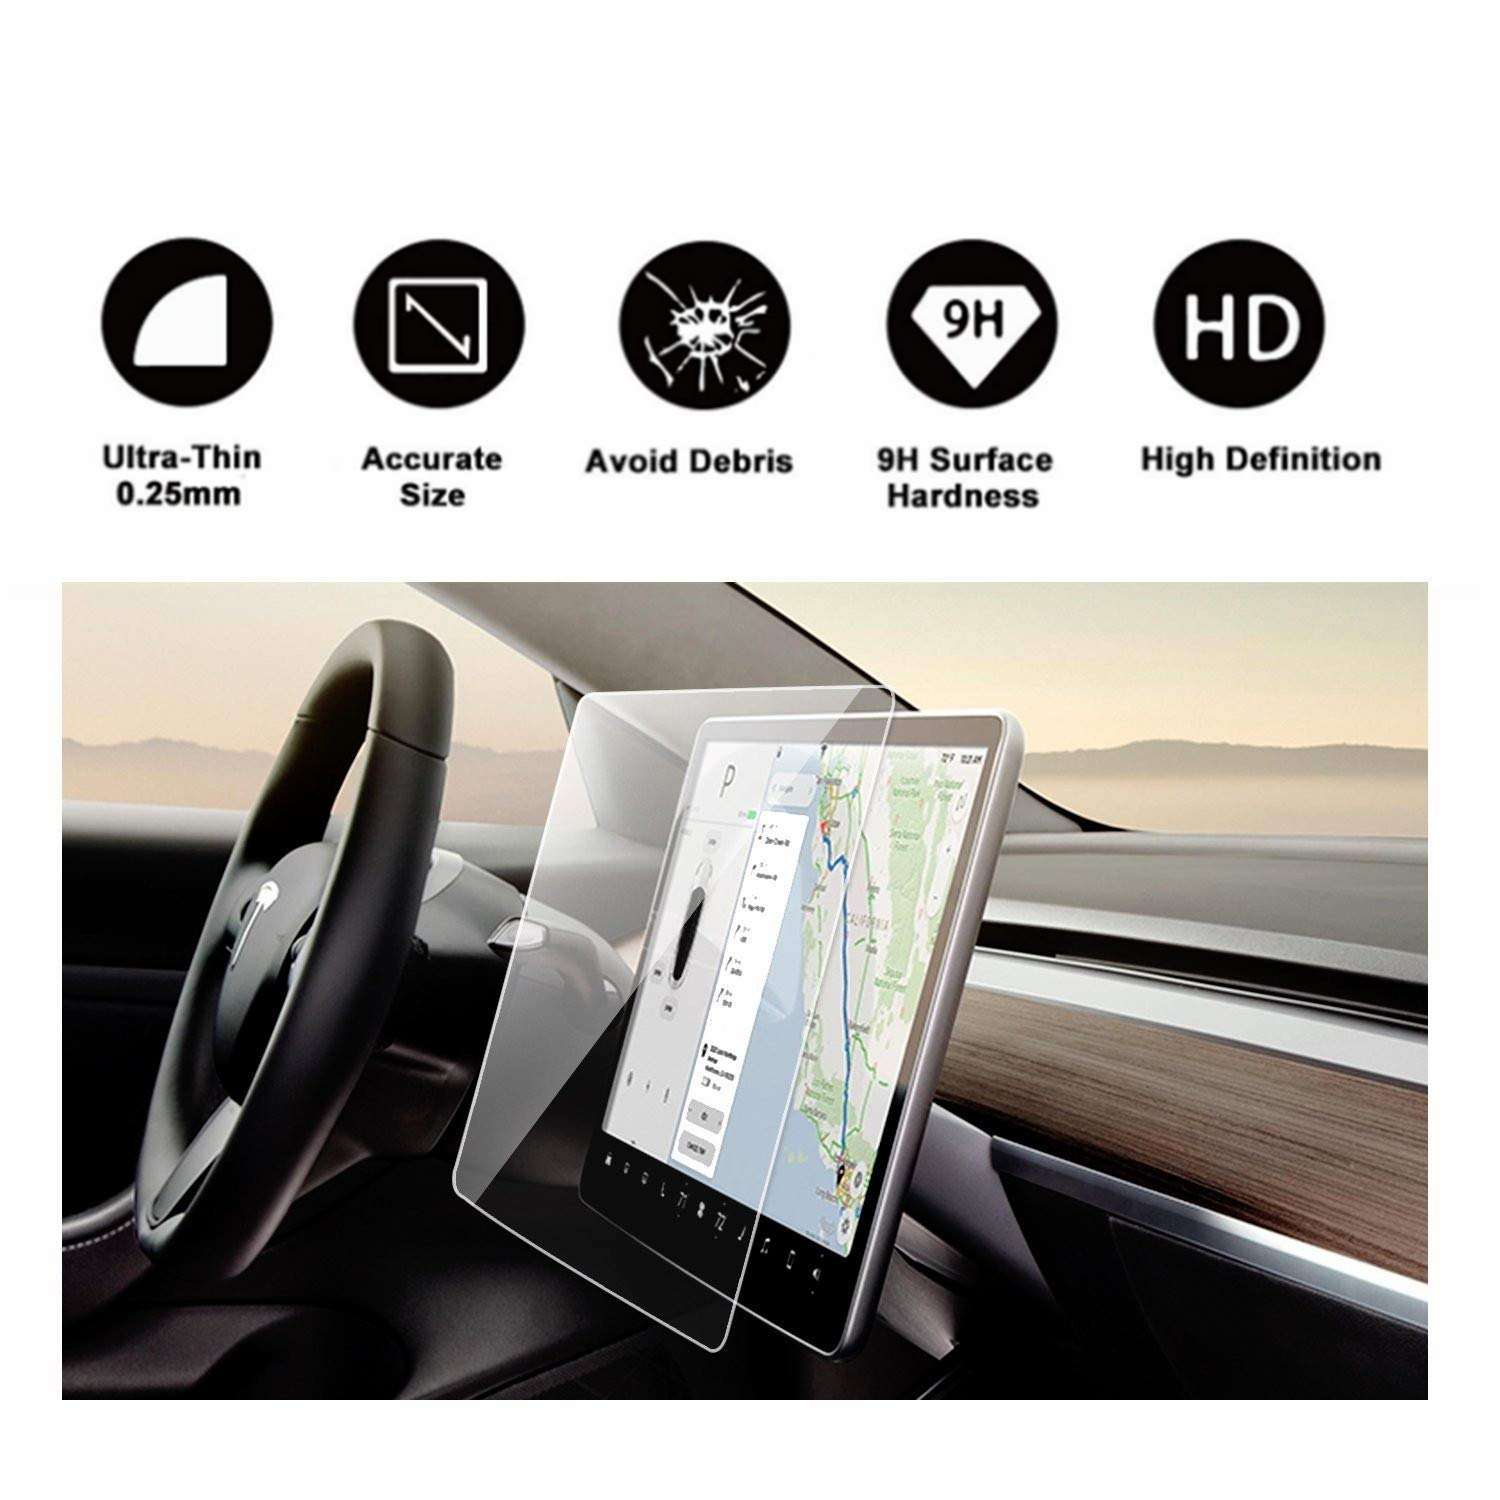 Screen Protector for Tesla Model 3 lesgos 15 9H HD Anti-Scratch and Shock Resistant Center Control Touch Screen Car Navigation Tempered Glass Screen Protector for Tesla Model 3